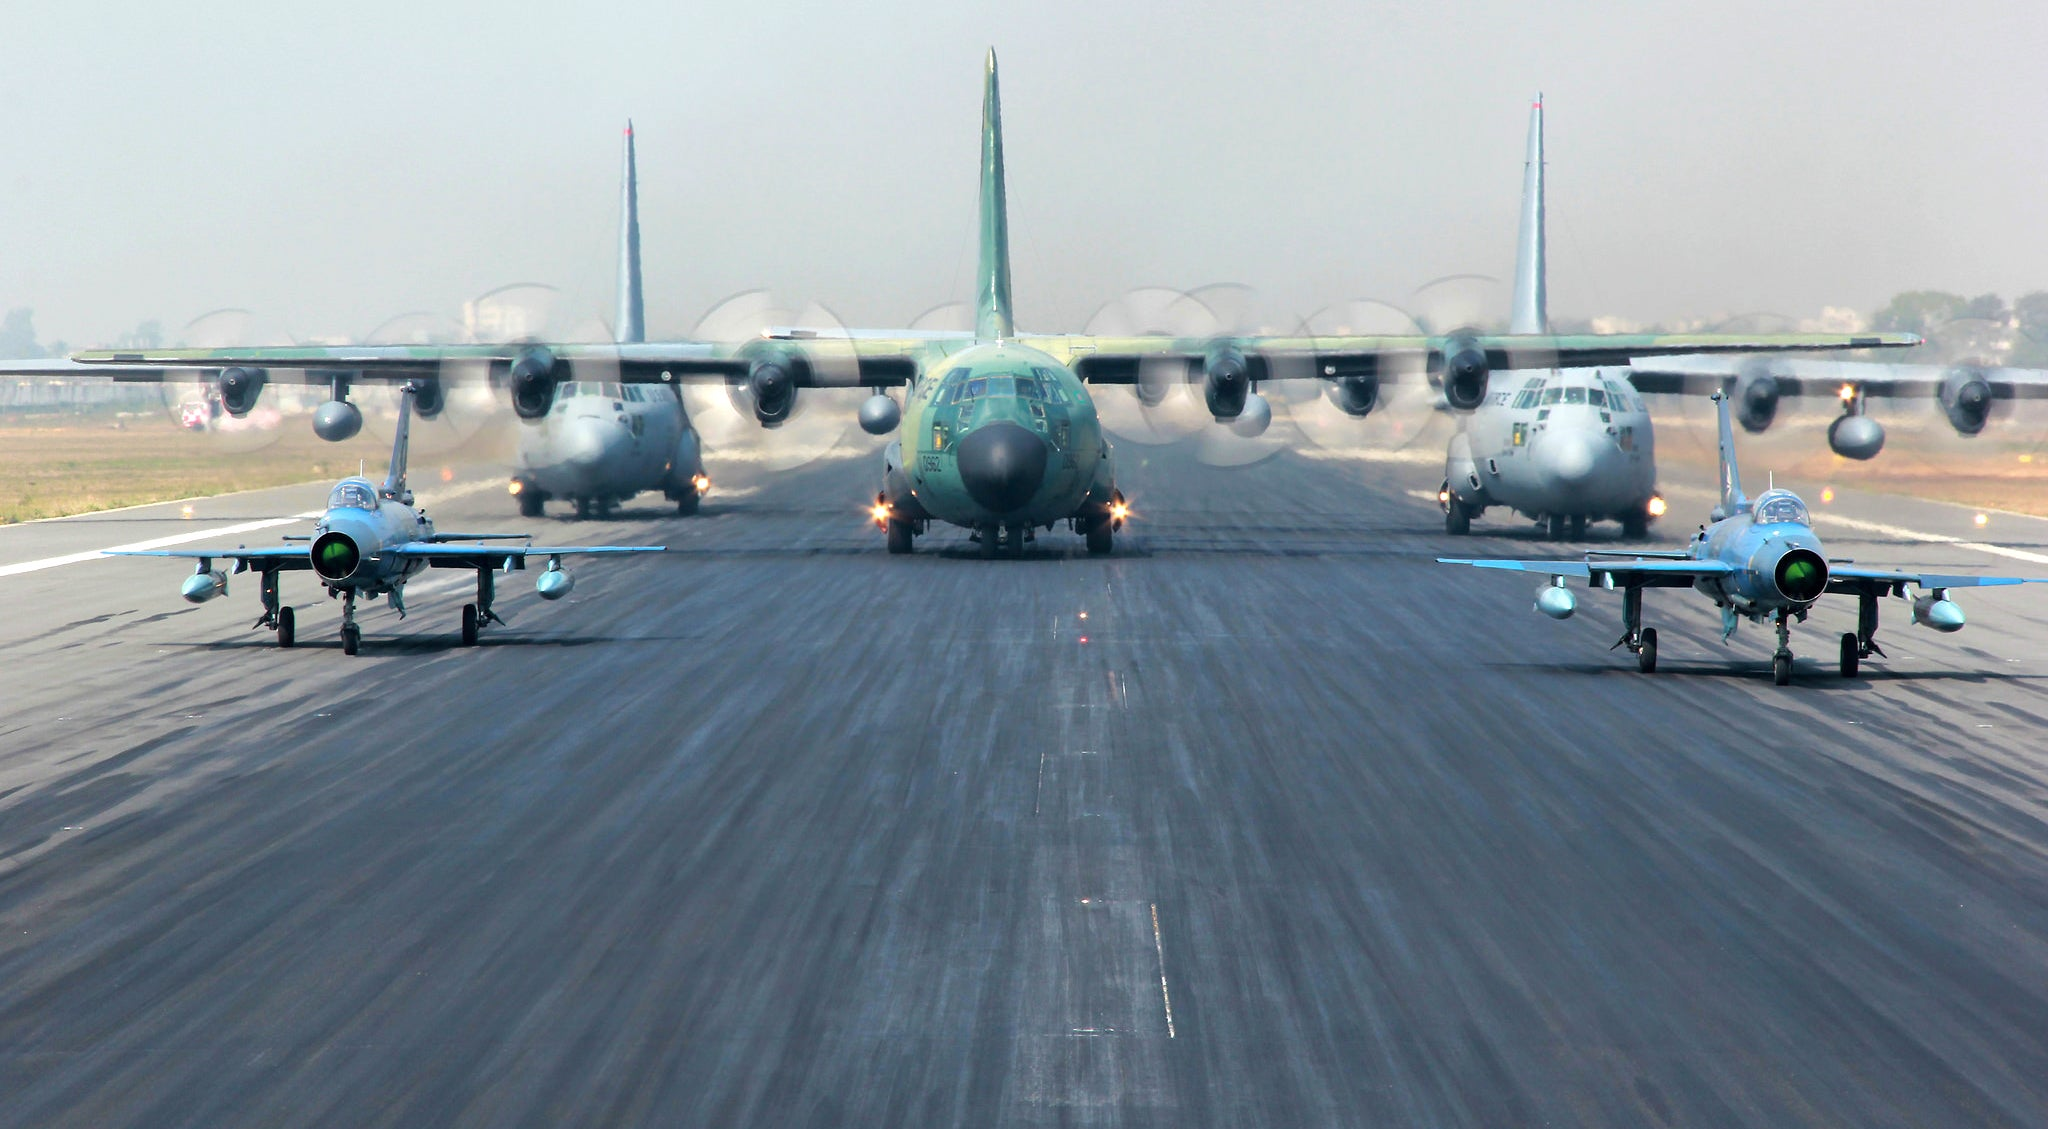 Cool Picture Of Five Aeroplanes Ready To Take Off Feels Like CGI